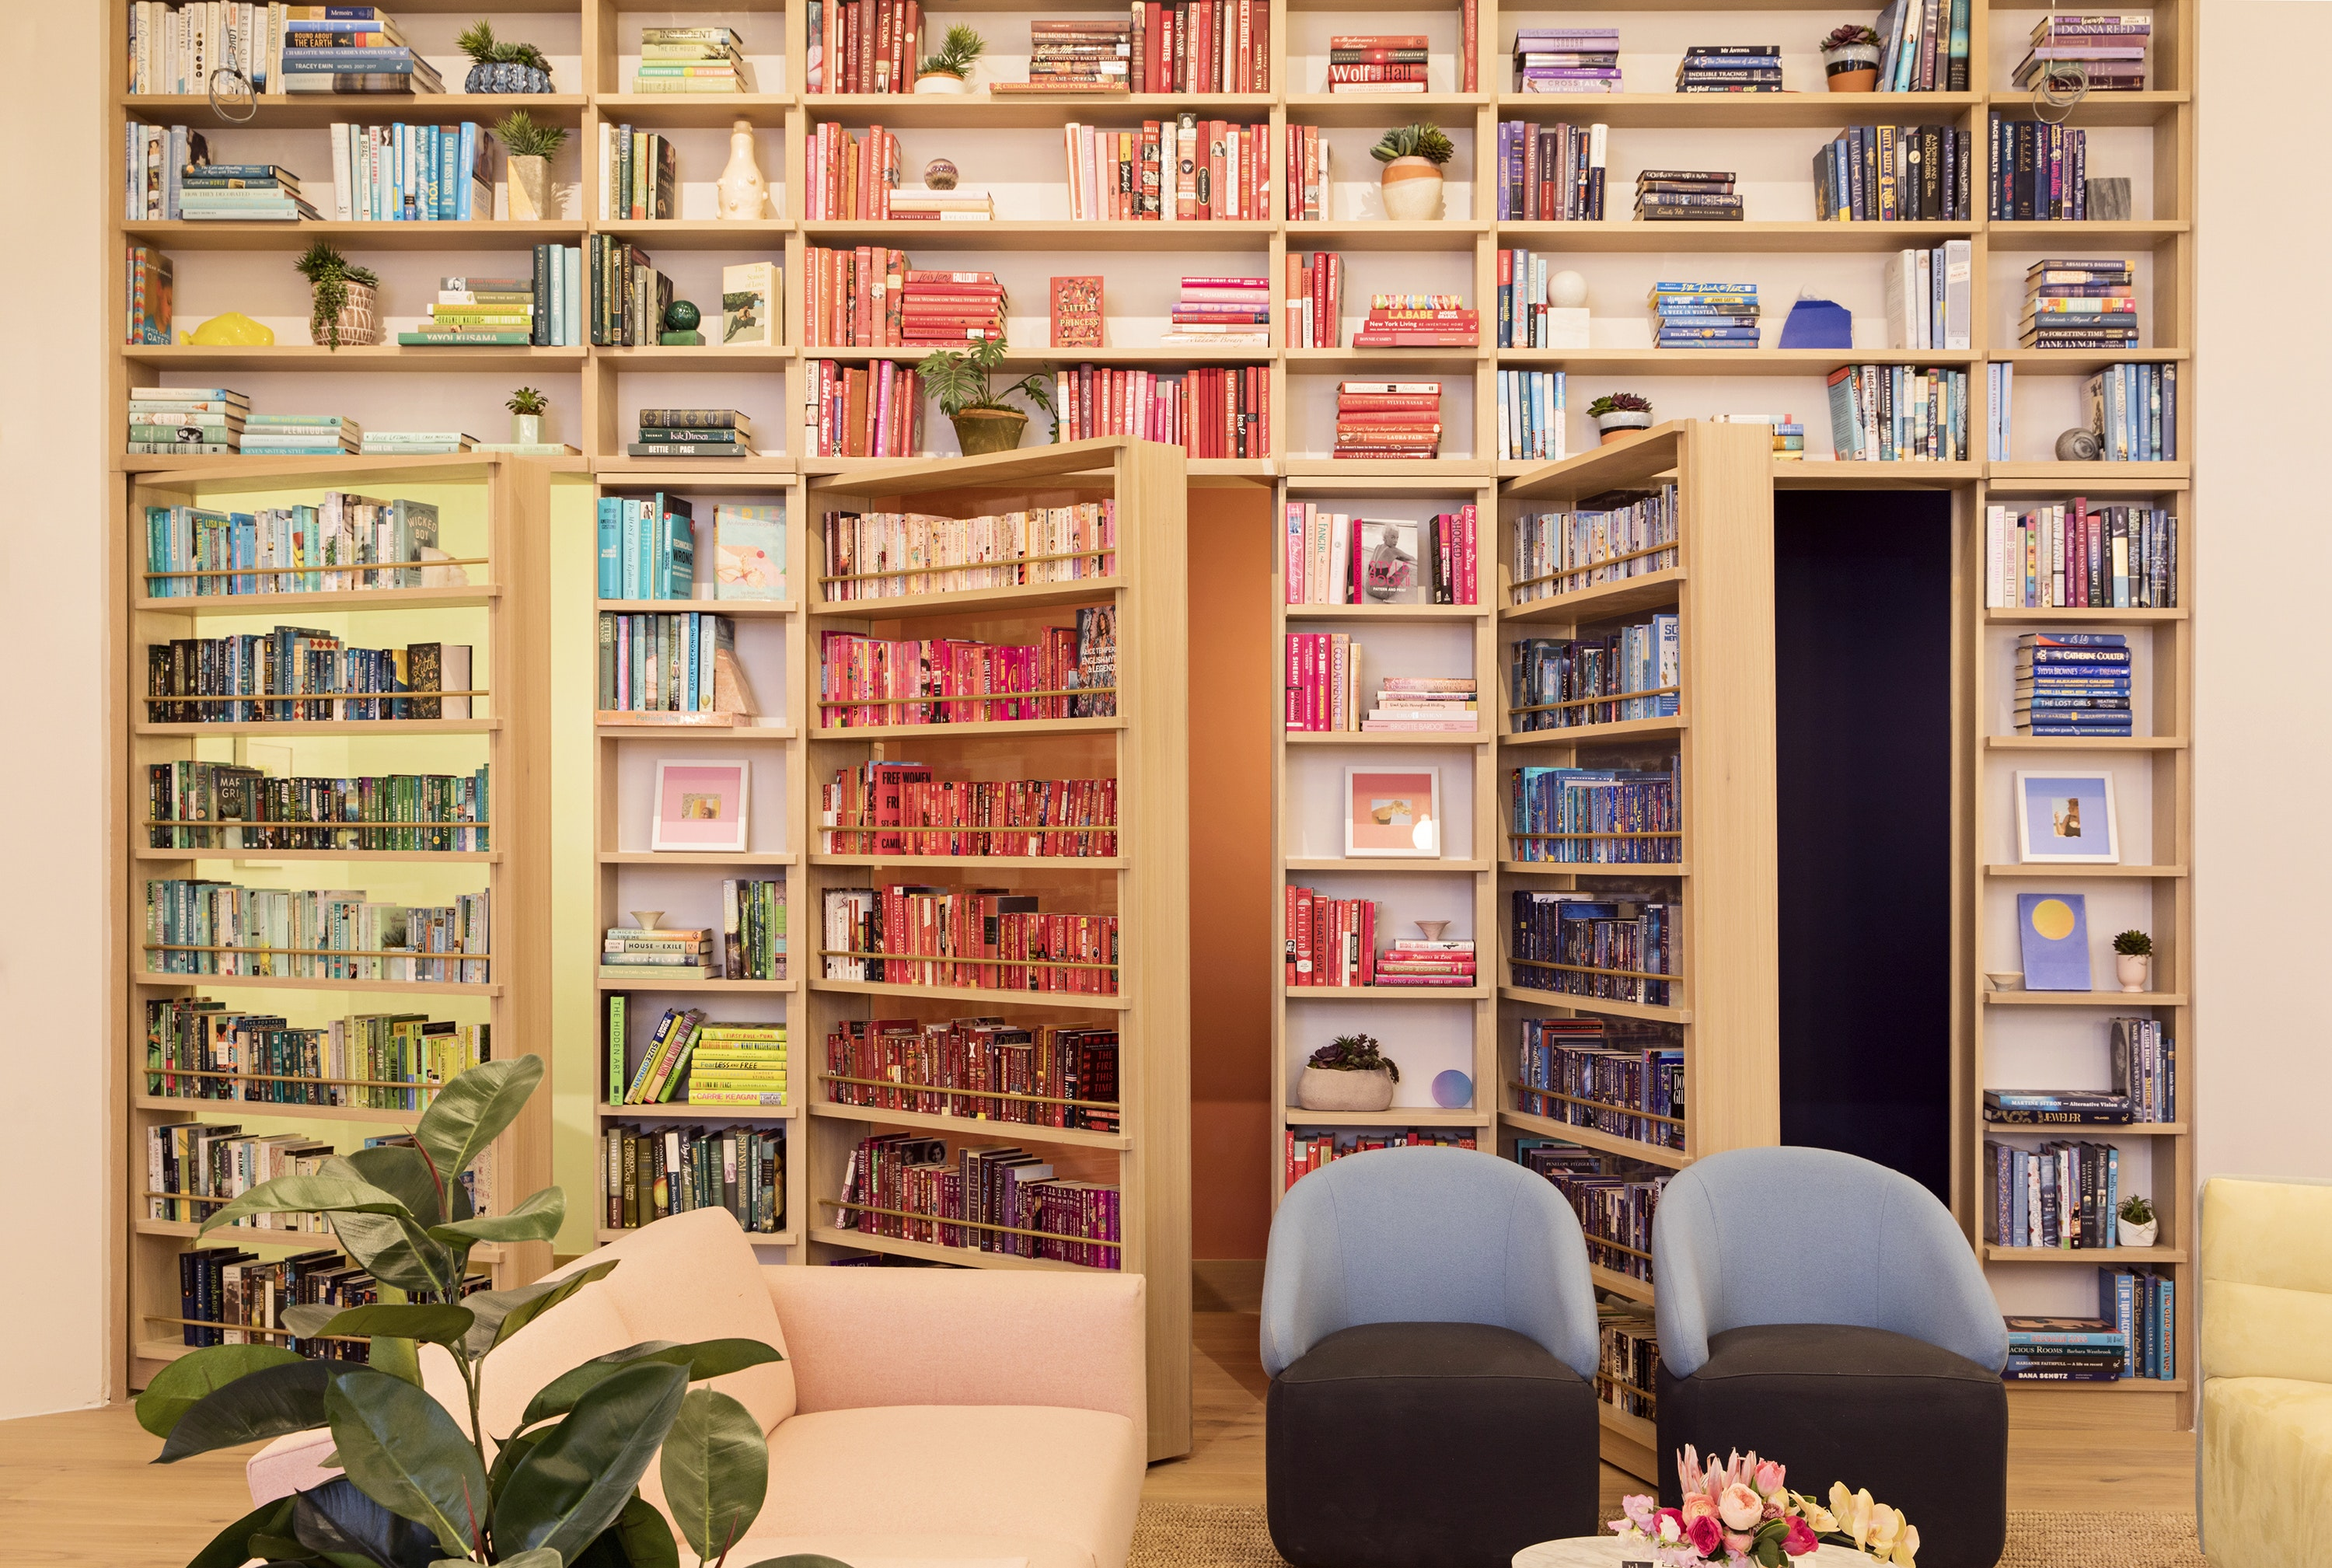 Each Wing offers books by women and nonbinary writers, all organized by color.